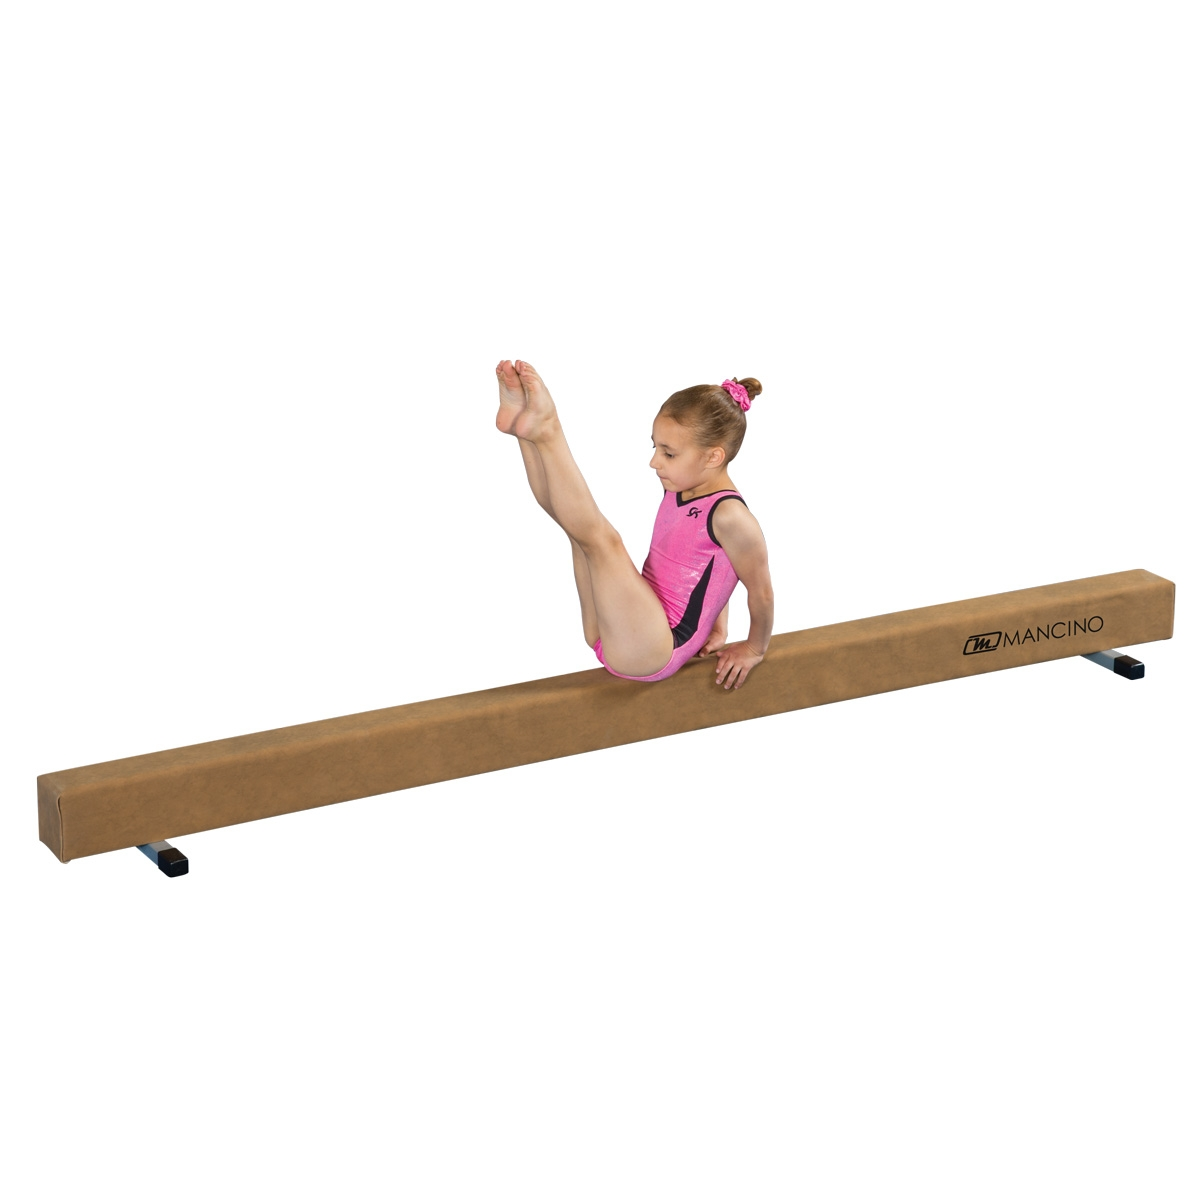 Mancino 8' Low Suede balance Beam with gymnast